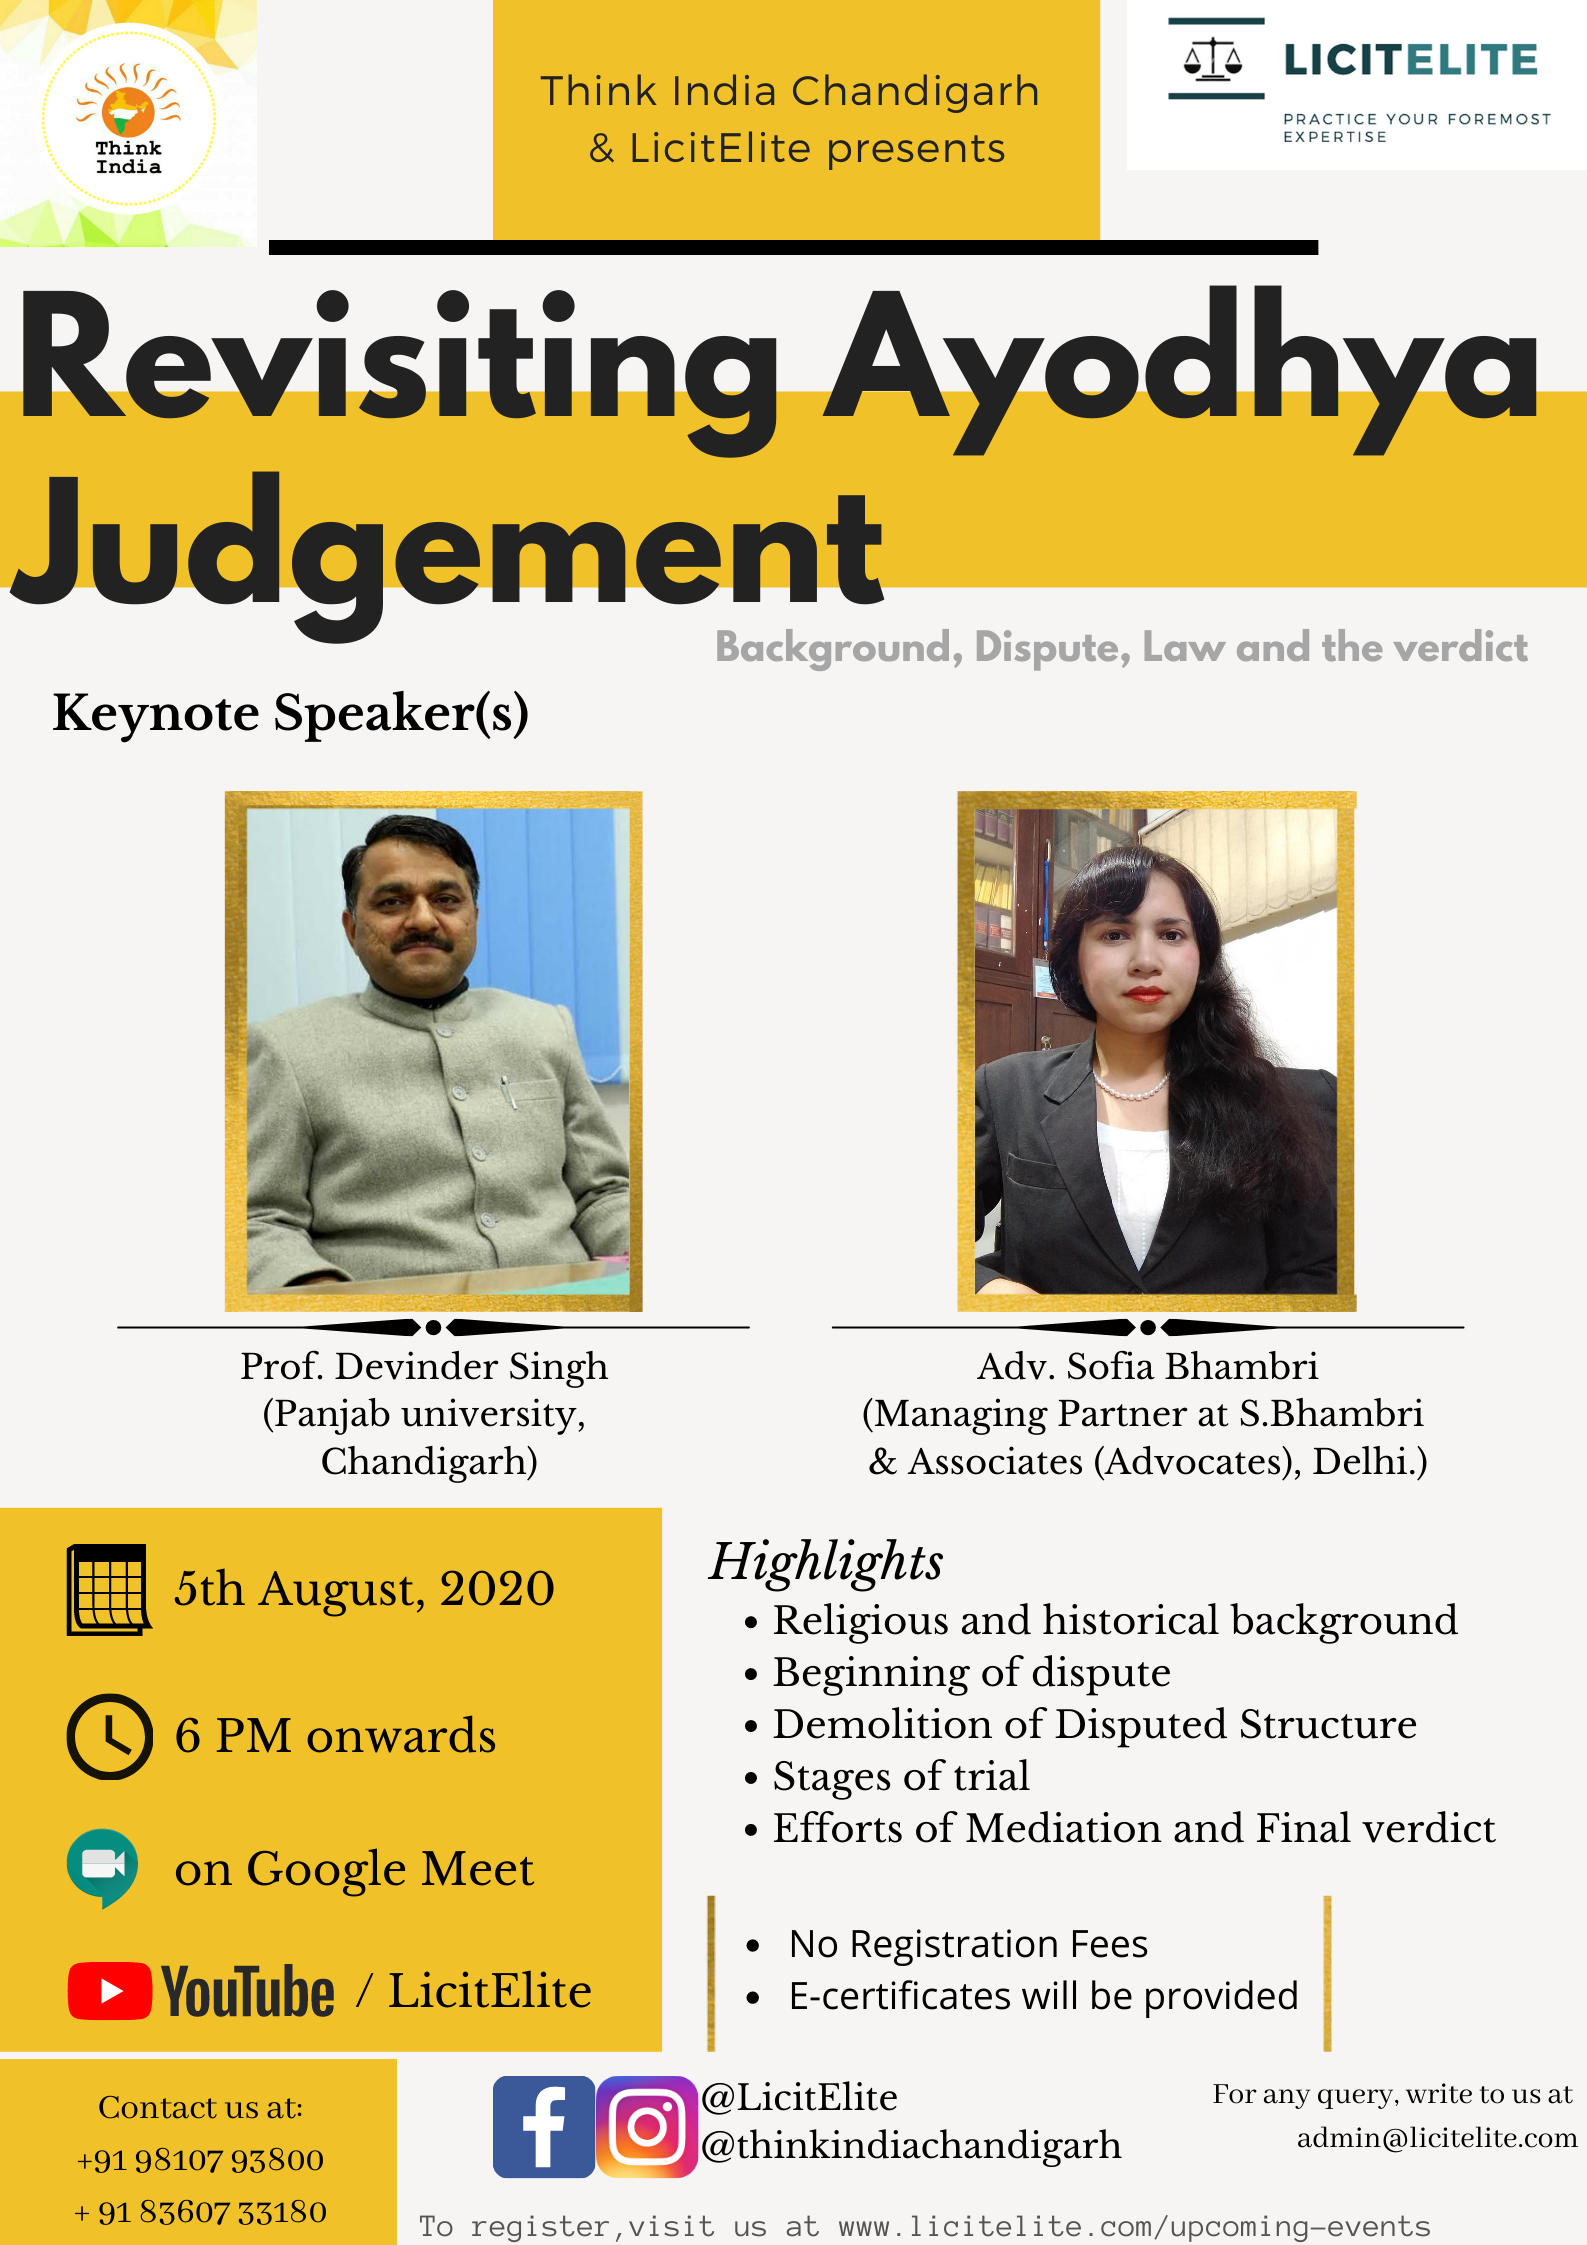 Webinar on Revisiting the Ayodhya Judgement by Think India and Licitelite